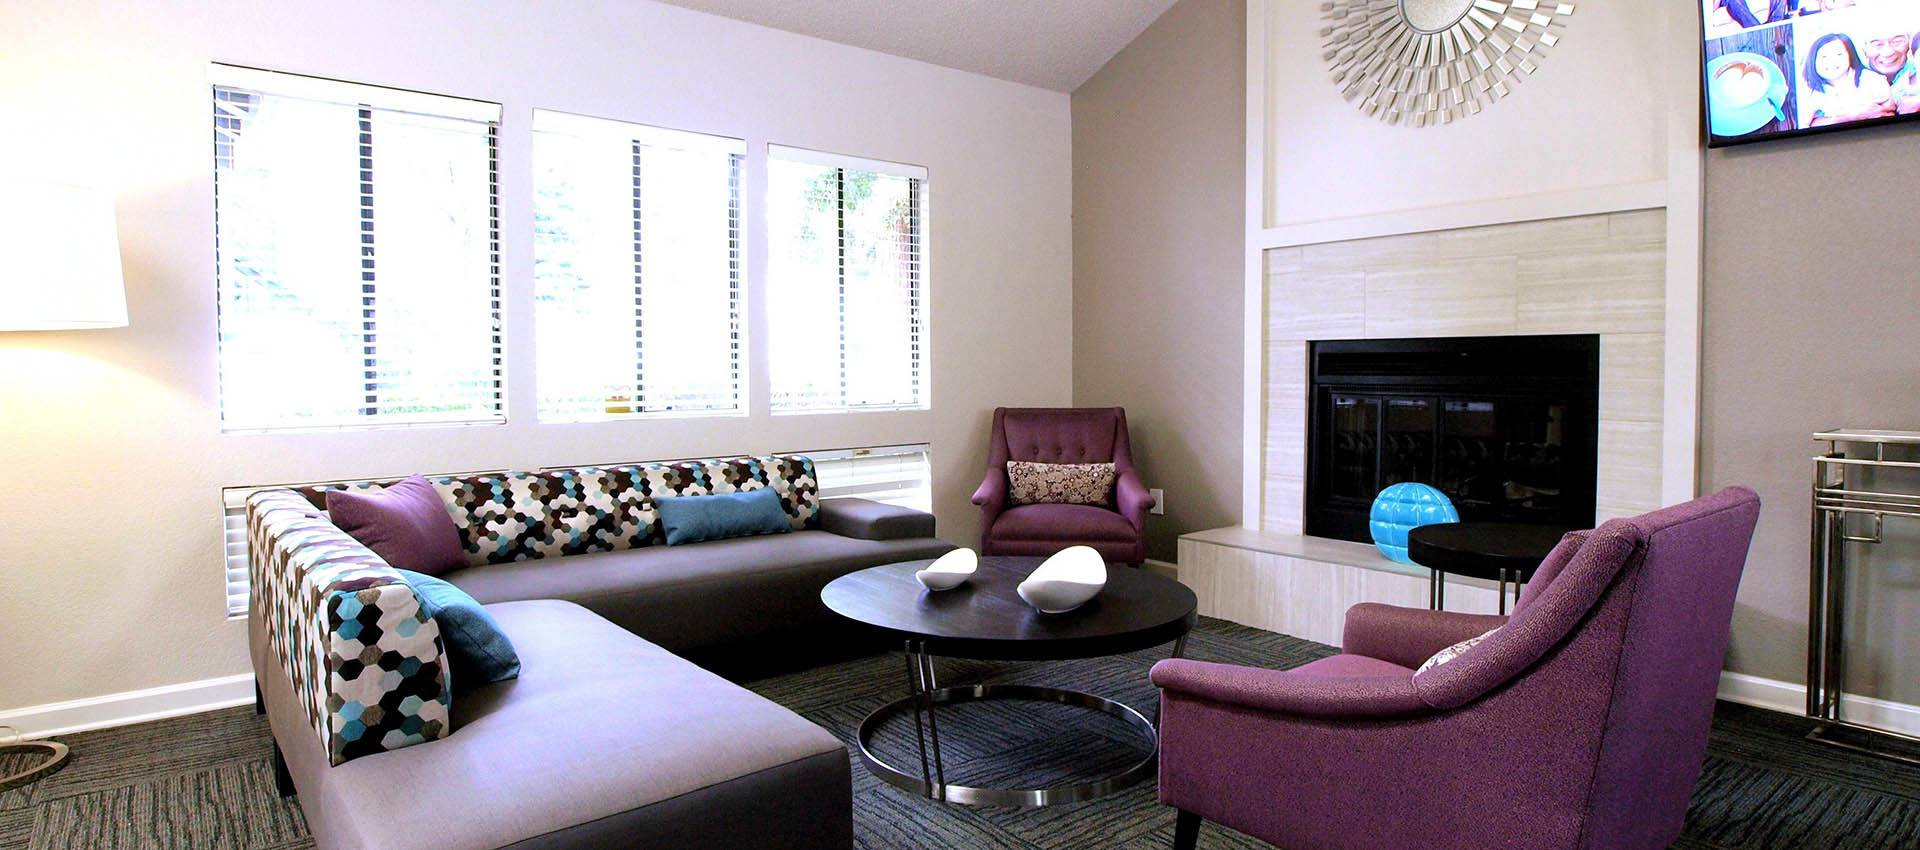 Lounge Seating at Plum Tree Apartment Homes in Martinez, California